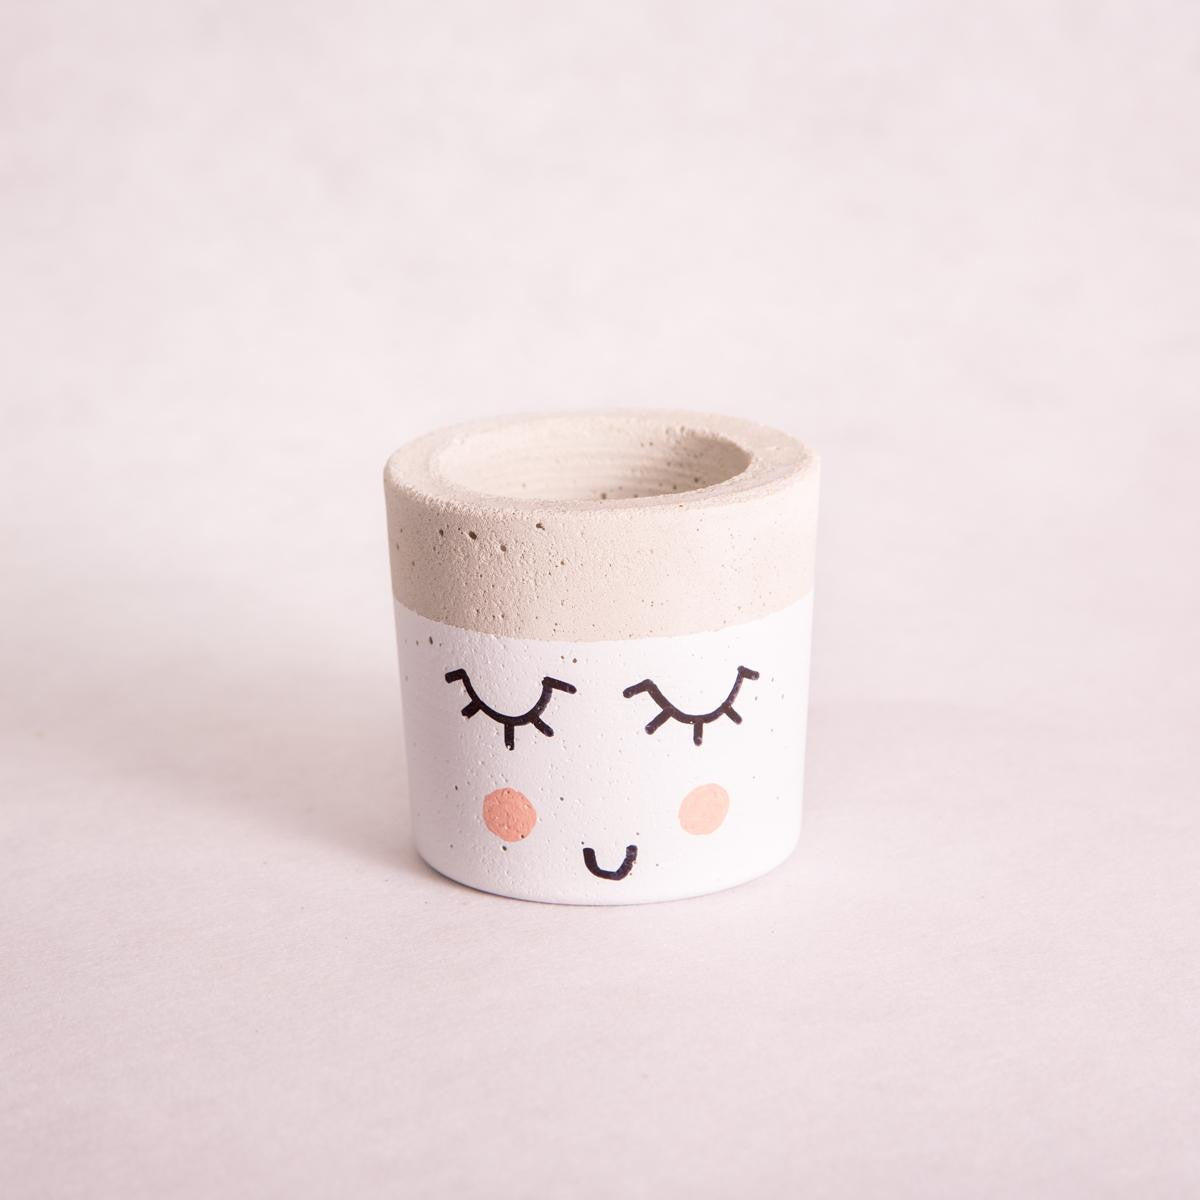 Mini Tub Concrete Planter - Cute Face - Concrete Planter - Throw Some Seeds - Australian gardening gifts and eco products online!